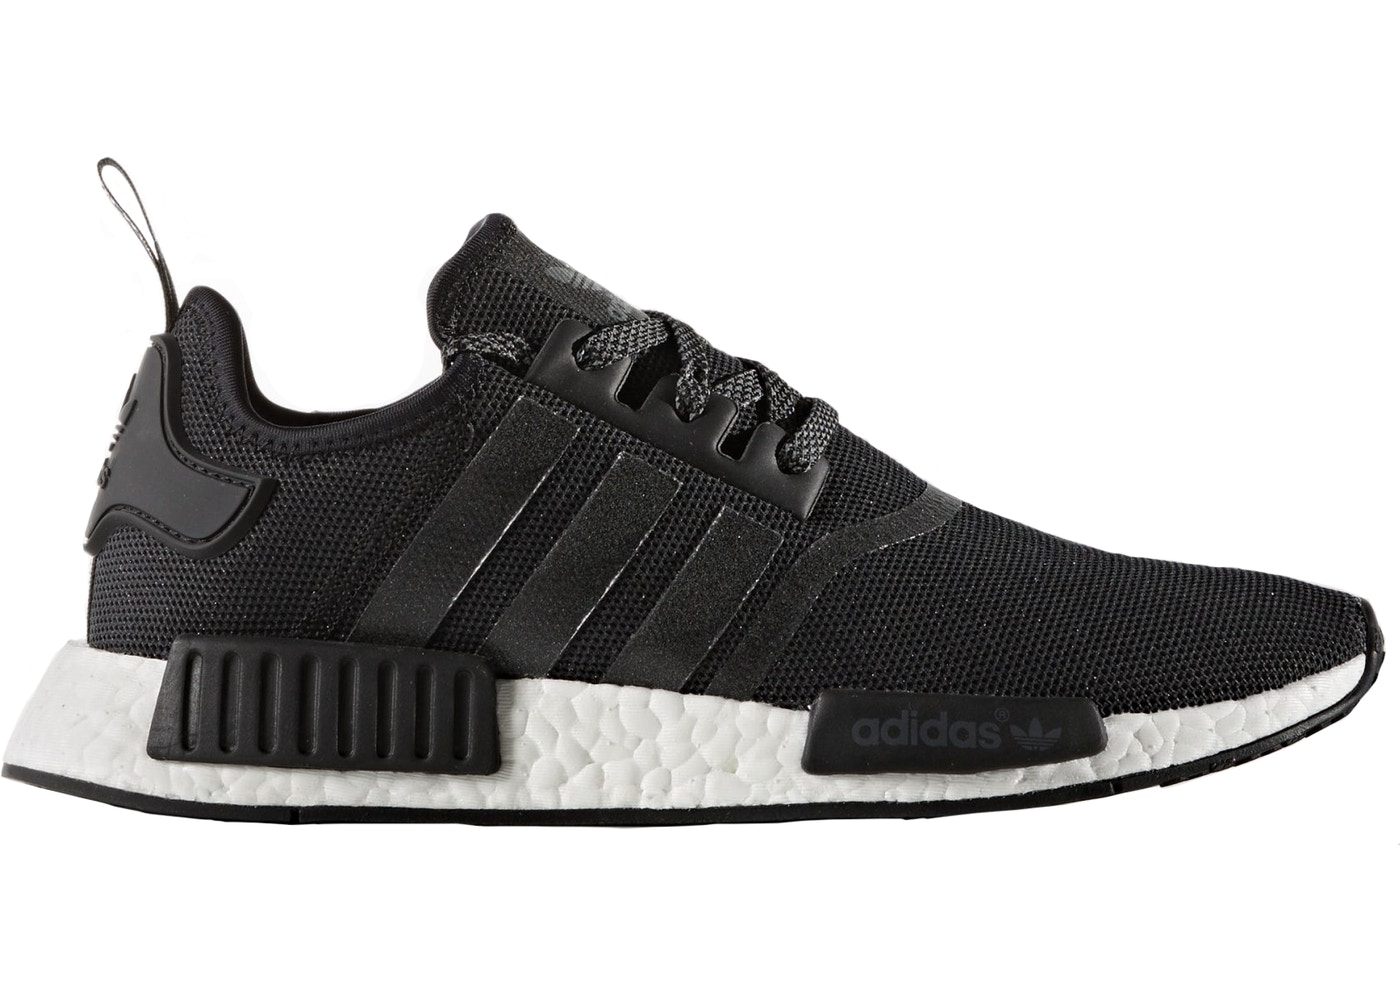 20ee38d3d adidas NMD R1 Black Reflective - S31505